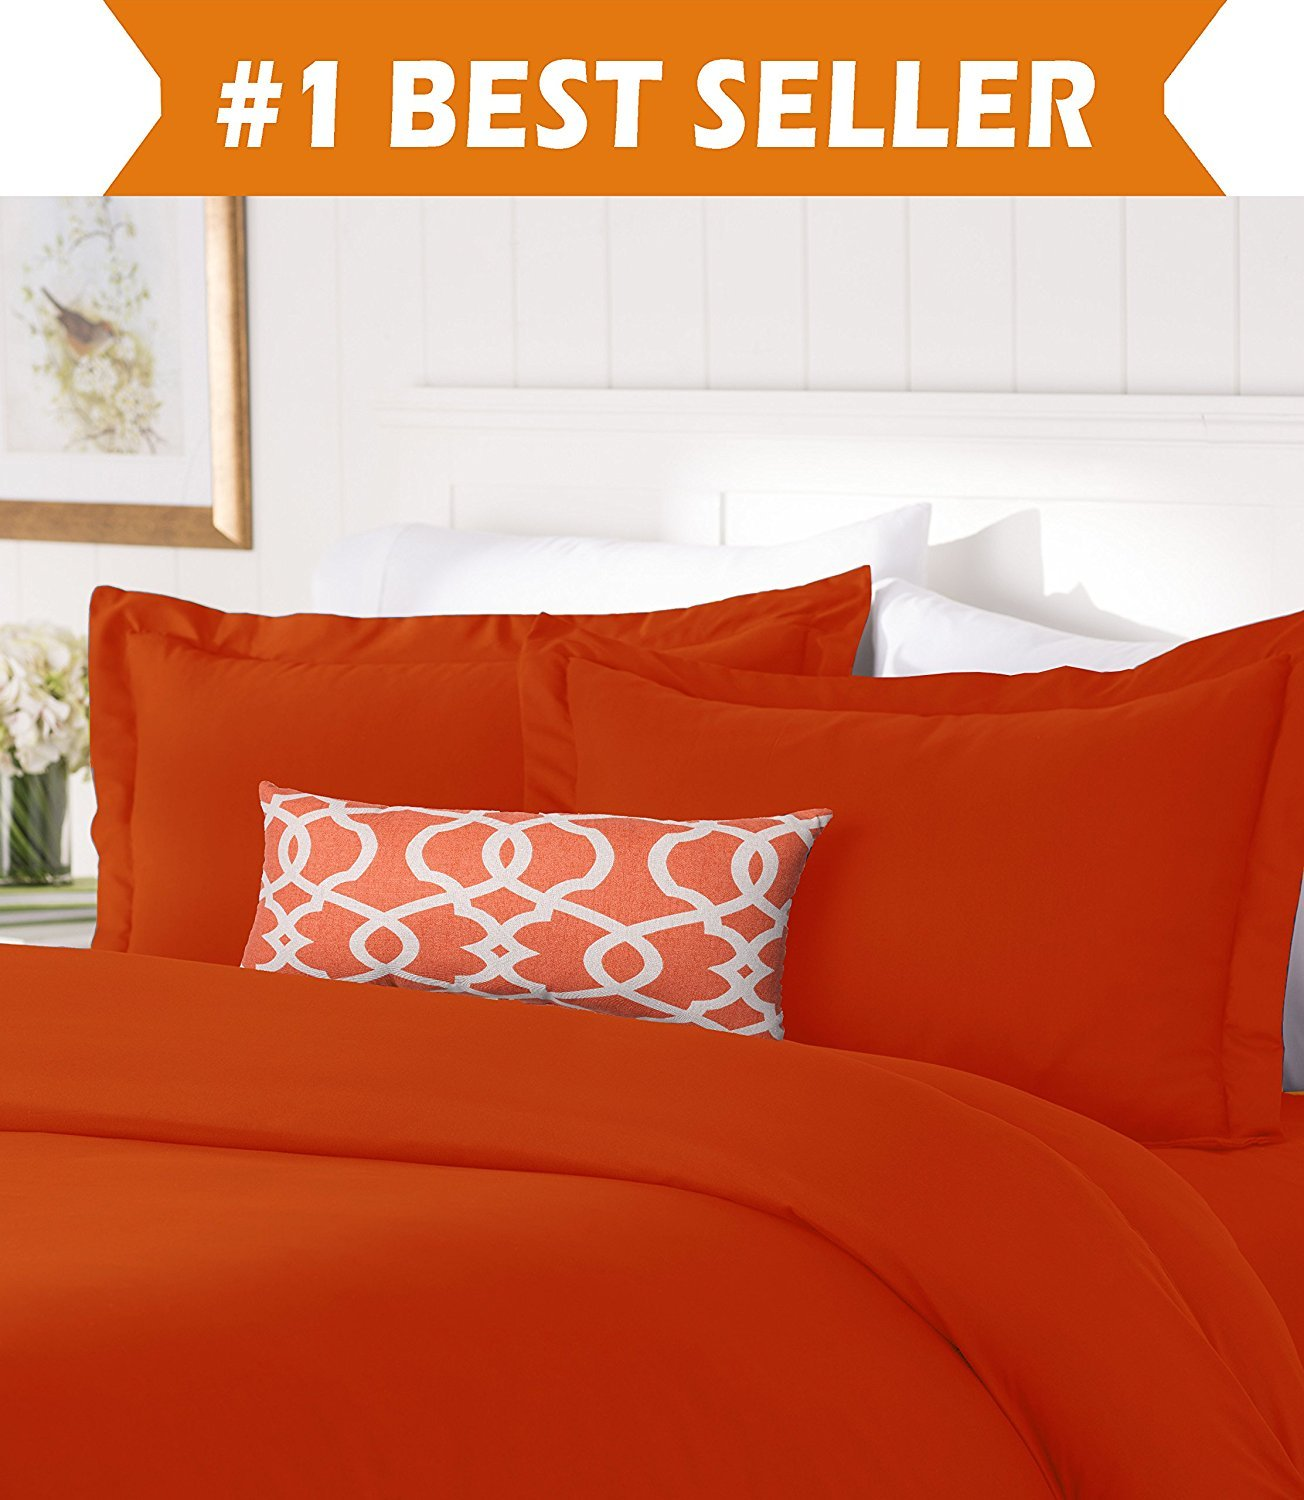 Elegant Comfort #1 Best Bedding Duvet Cover Set! 1500 Thread Count Egyptian Quality Luxurious Silky-Soft WRINKLE FREE 2-Piece Duvet Cover Set, Twin/Twin XL, Rust